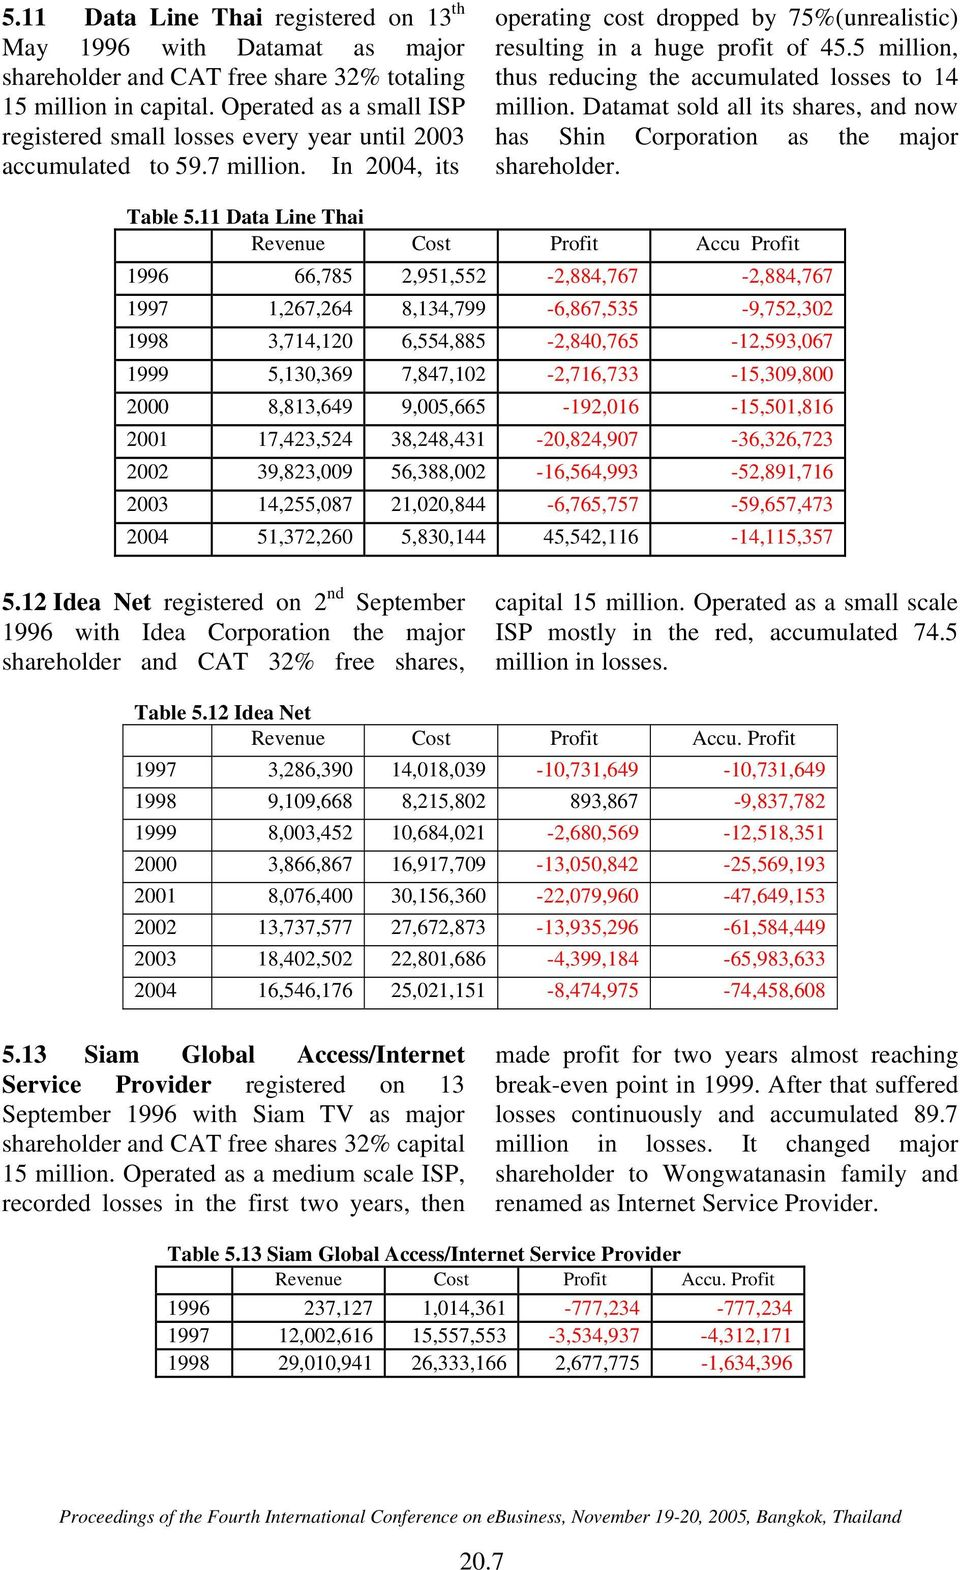 5 million, thus reducing the accumulated losses to 14 million. Datamat sold all its shares, and now has Shin Corporation as the major shareholder. Table 5.